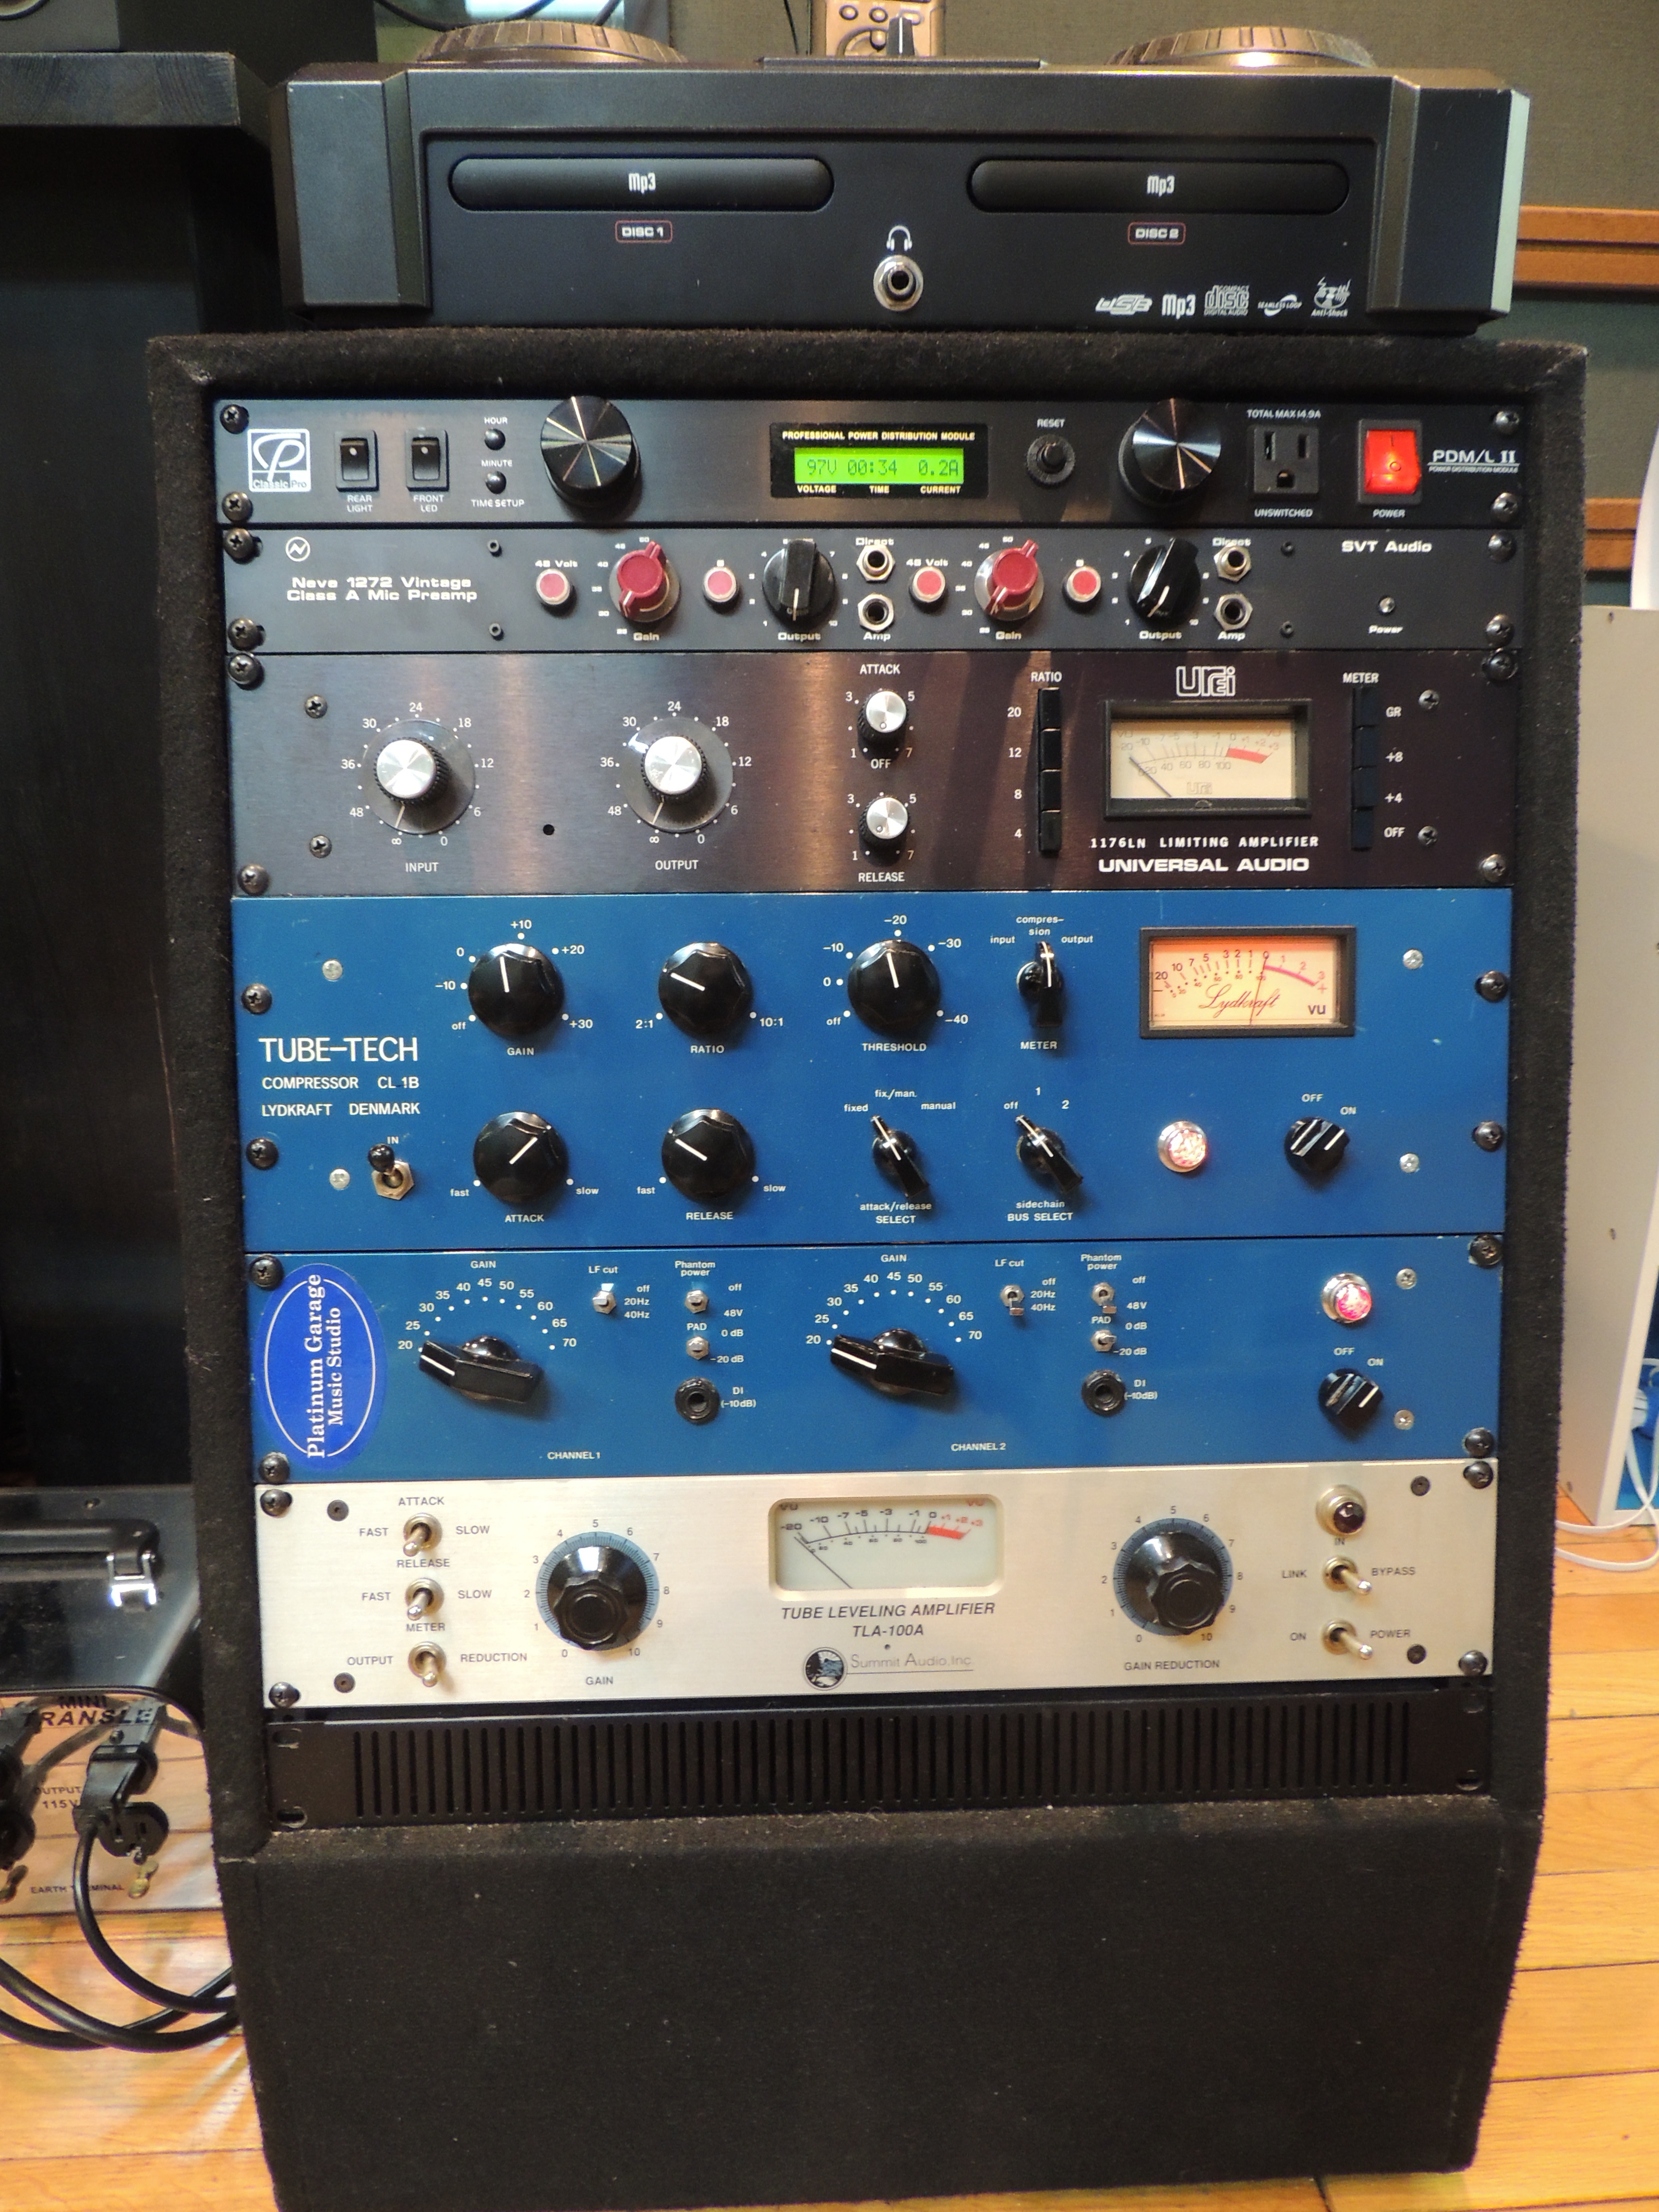 PlatinumGarage Tubetech neve 1176